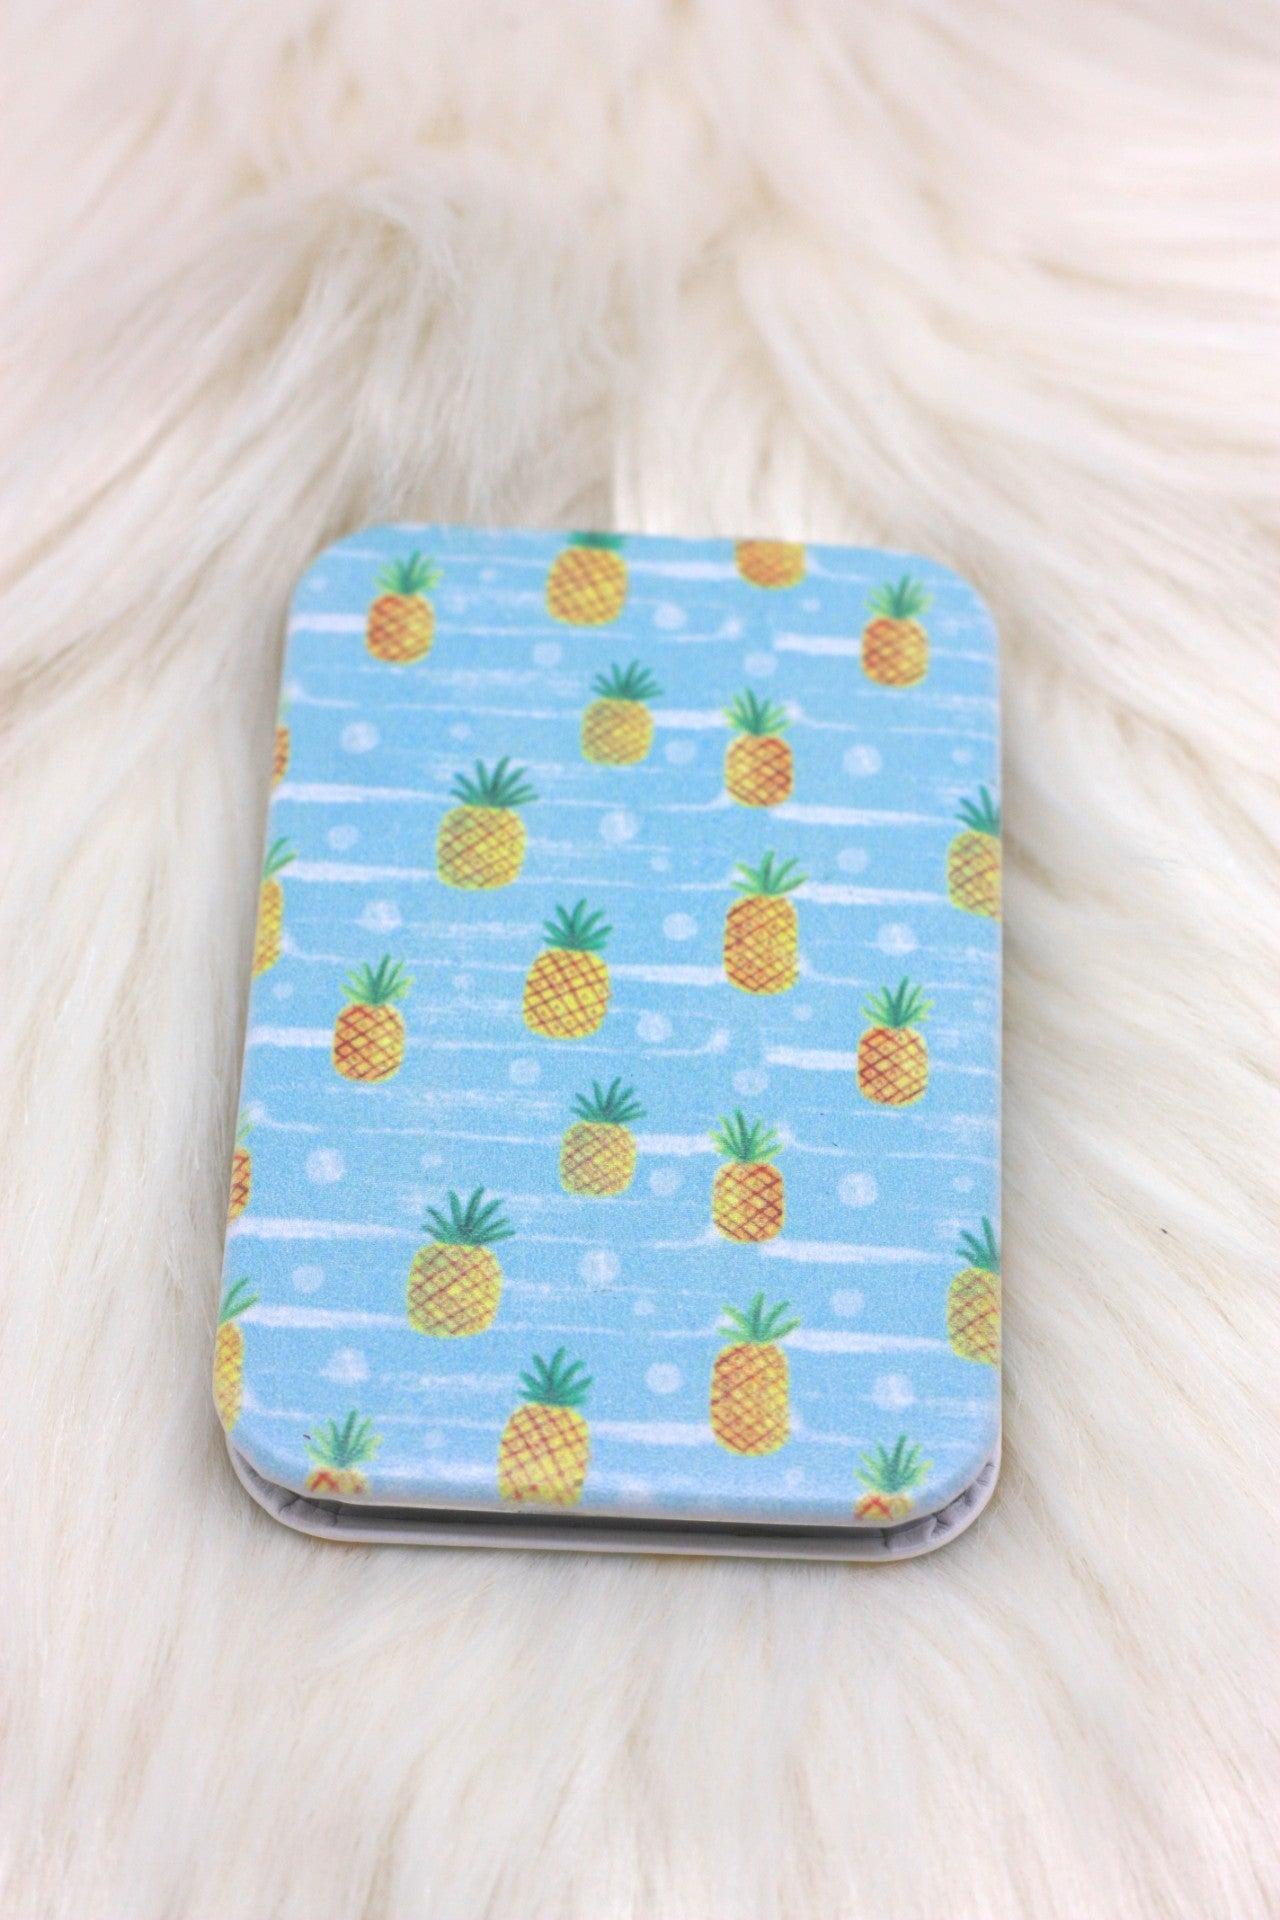 Aqua Pineapple Compact Mirror - ChicMela